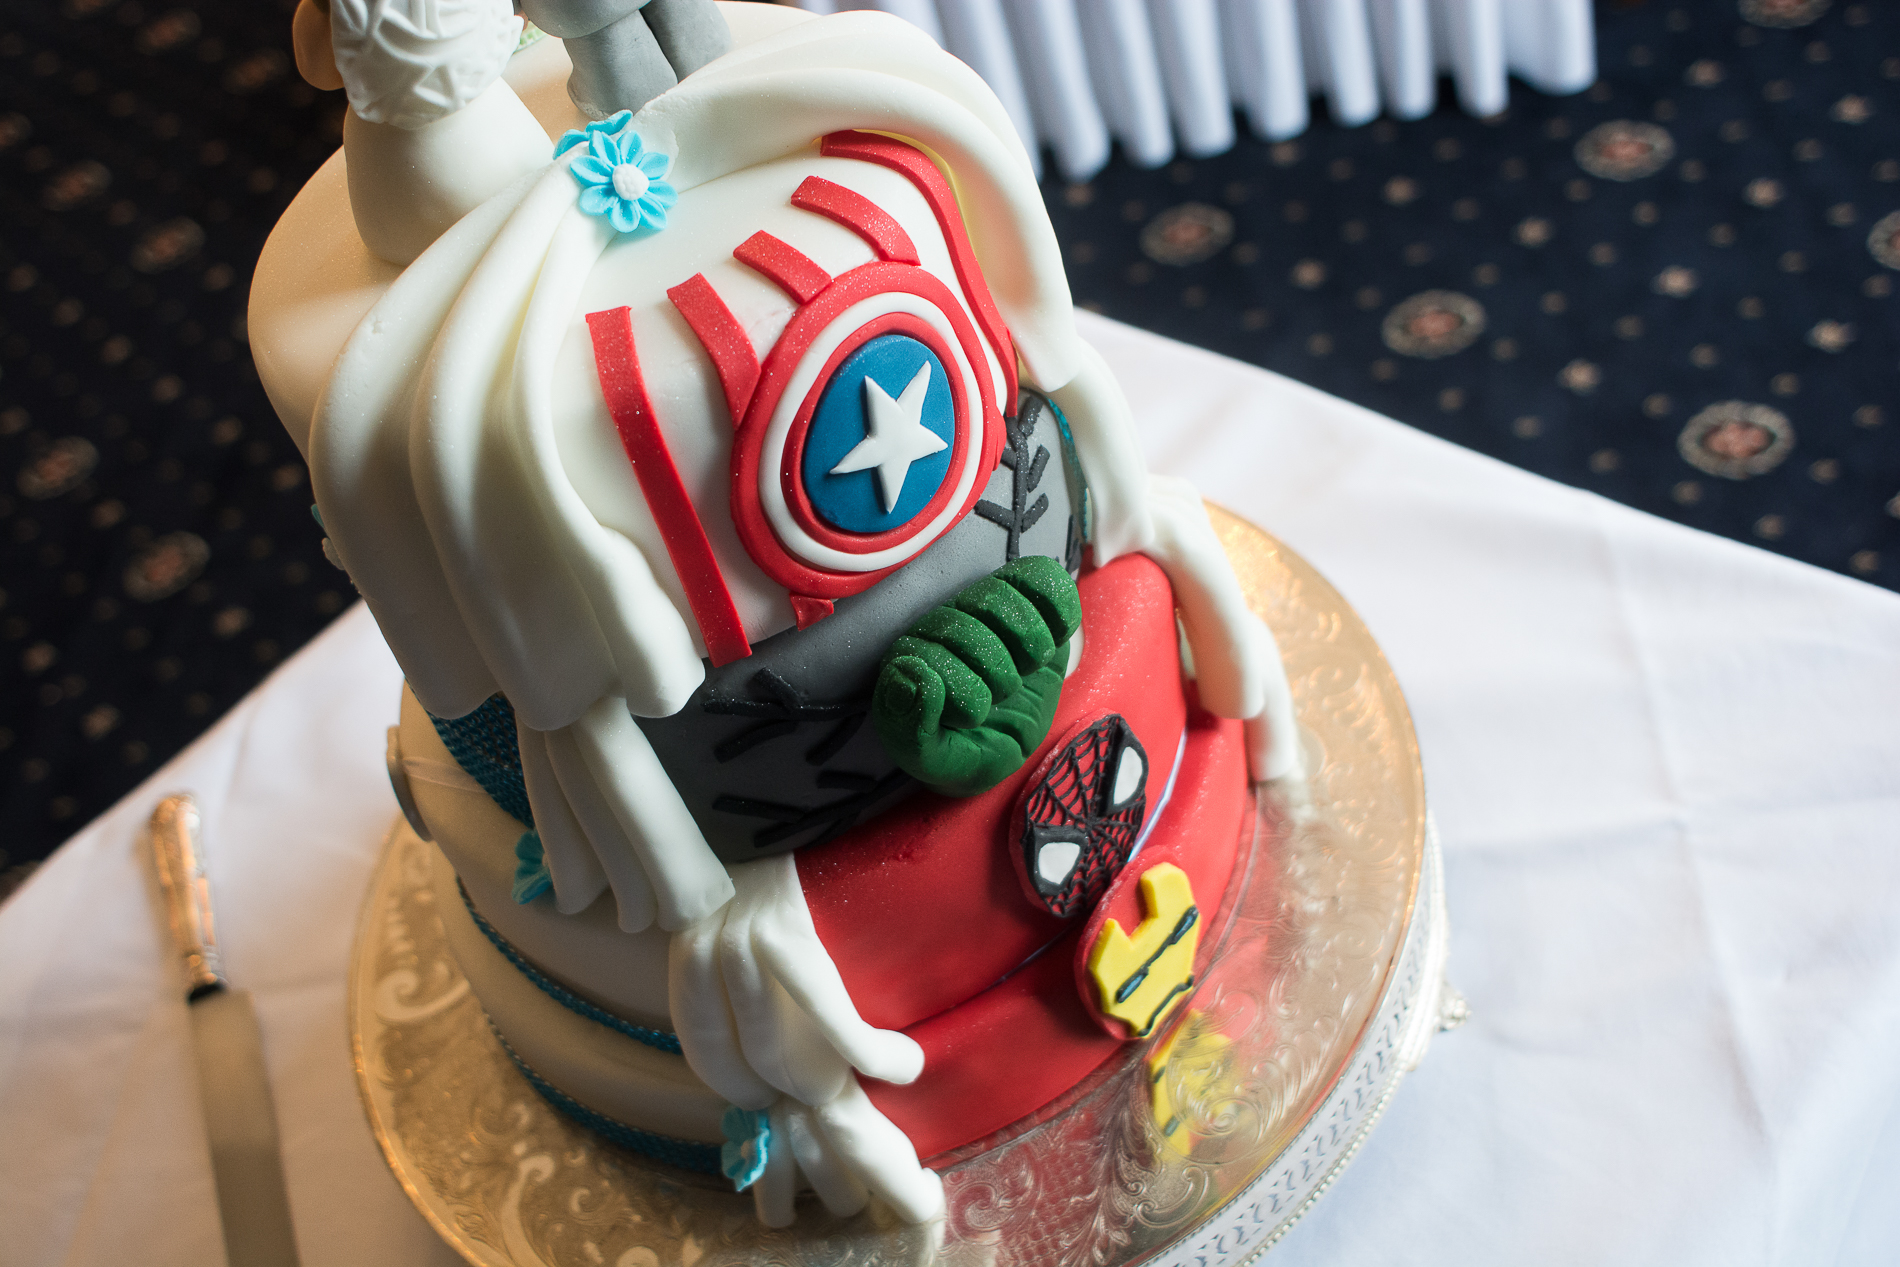 awesome wedding cake with a hidden marvel theme at the back